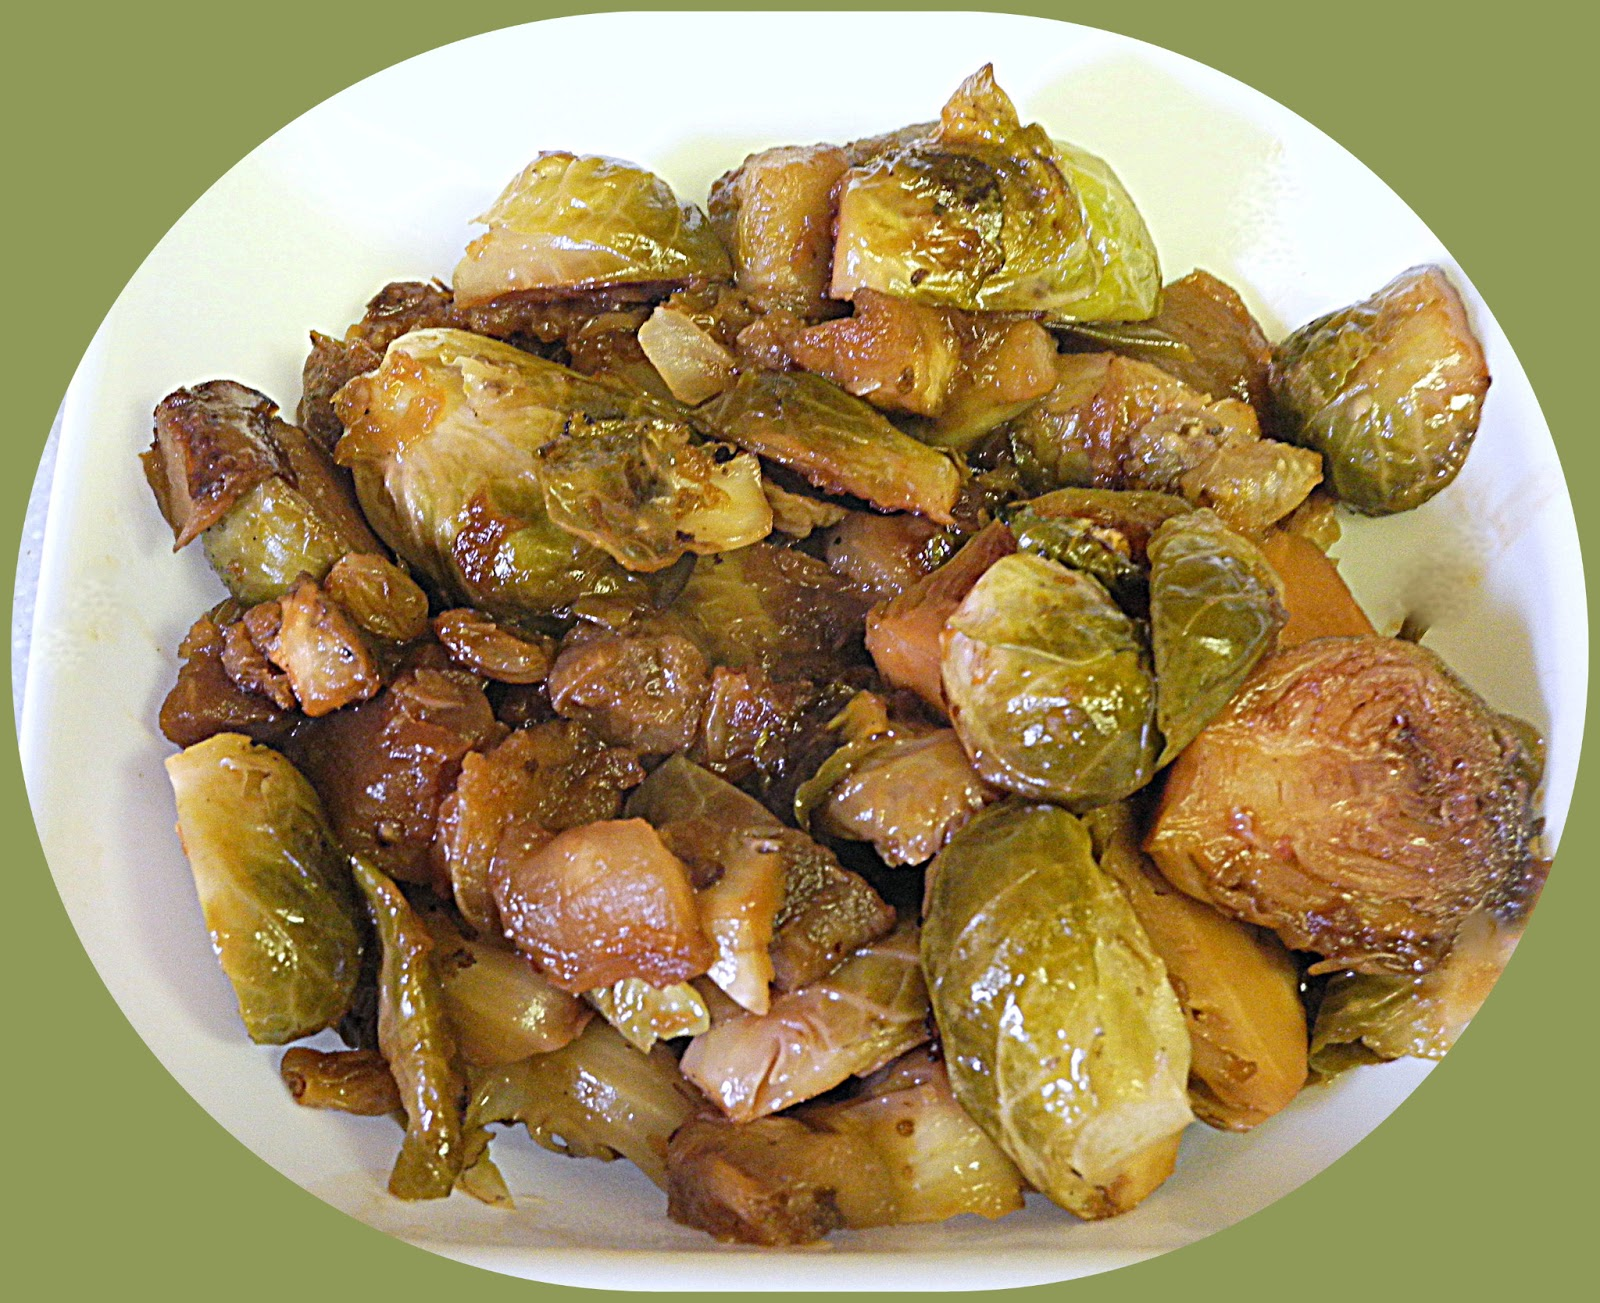 BIZZY BAKES: Brussels Sprouts with Maple Syrup